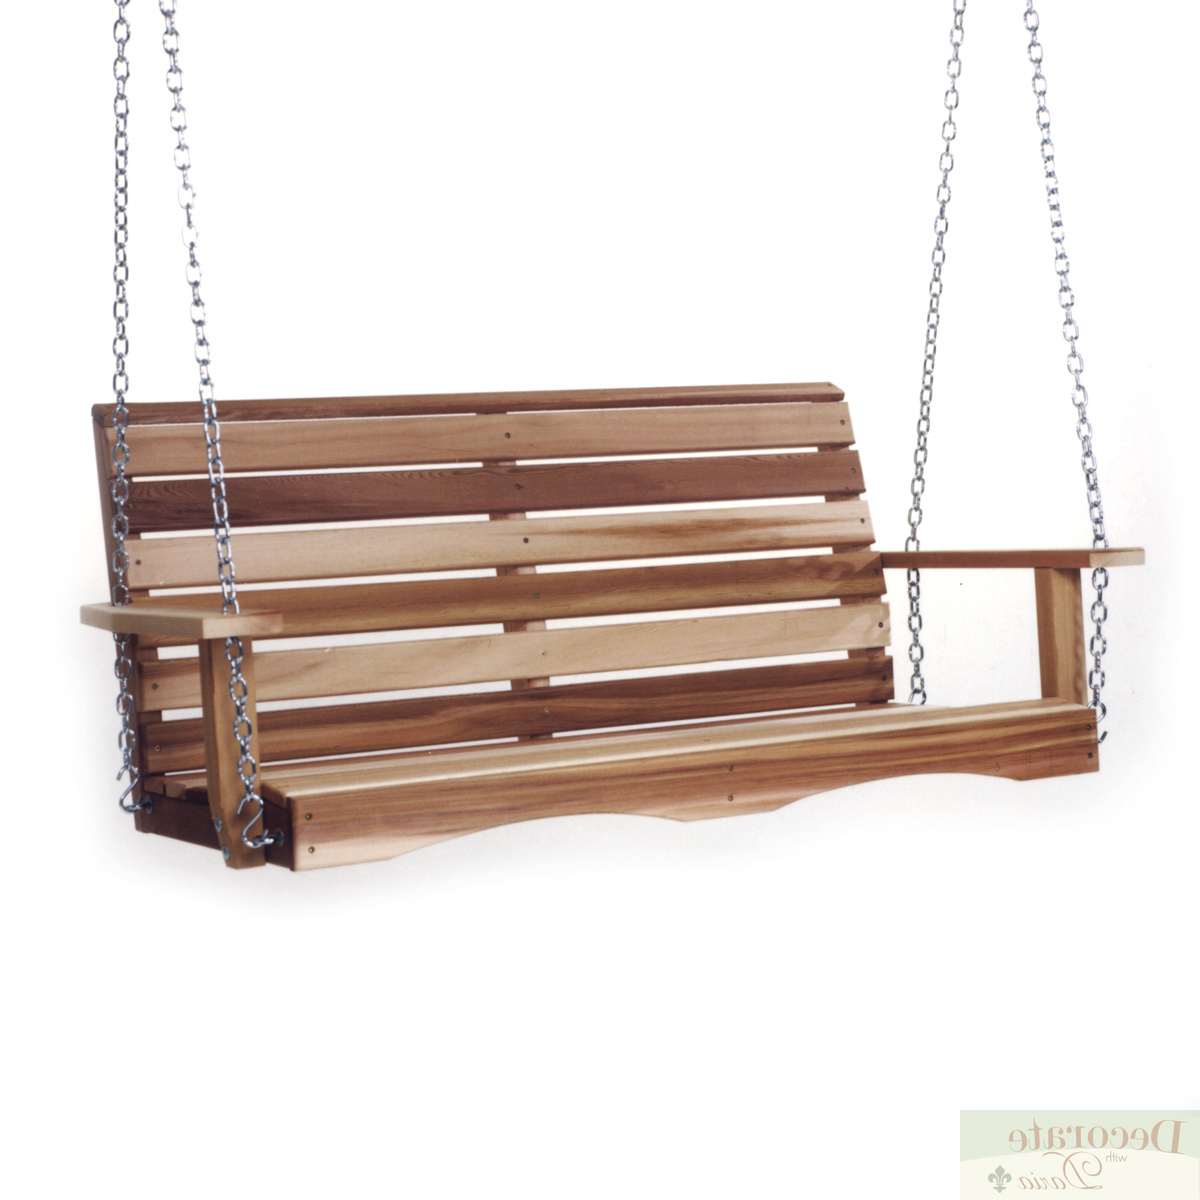 Details About Porch Swing 4 Ft Red Cedar Crafted W/mounting Chain Kit Contoured Back Slats New Intended For Current Porch Swings With Chain (View 6 of 30)